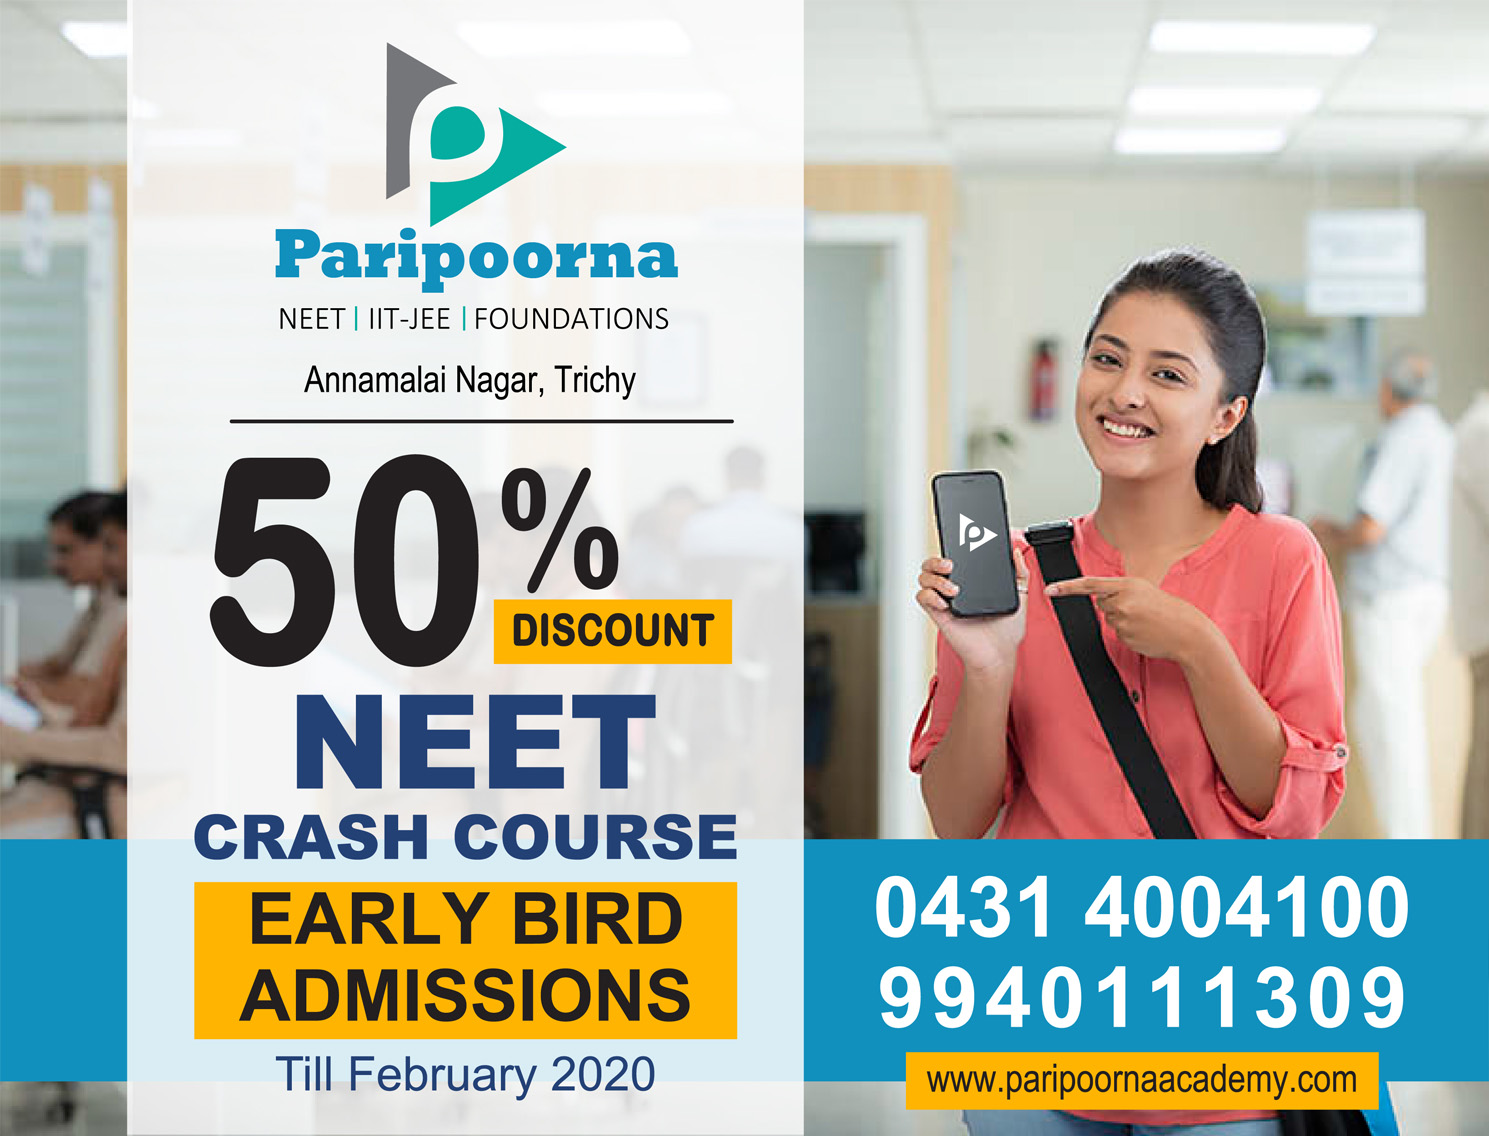 Early Bird Admissions Offer